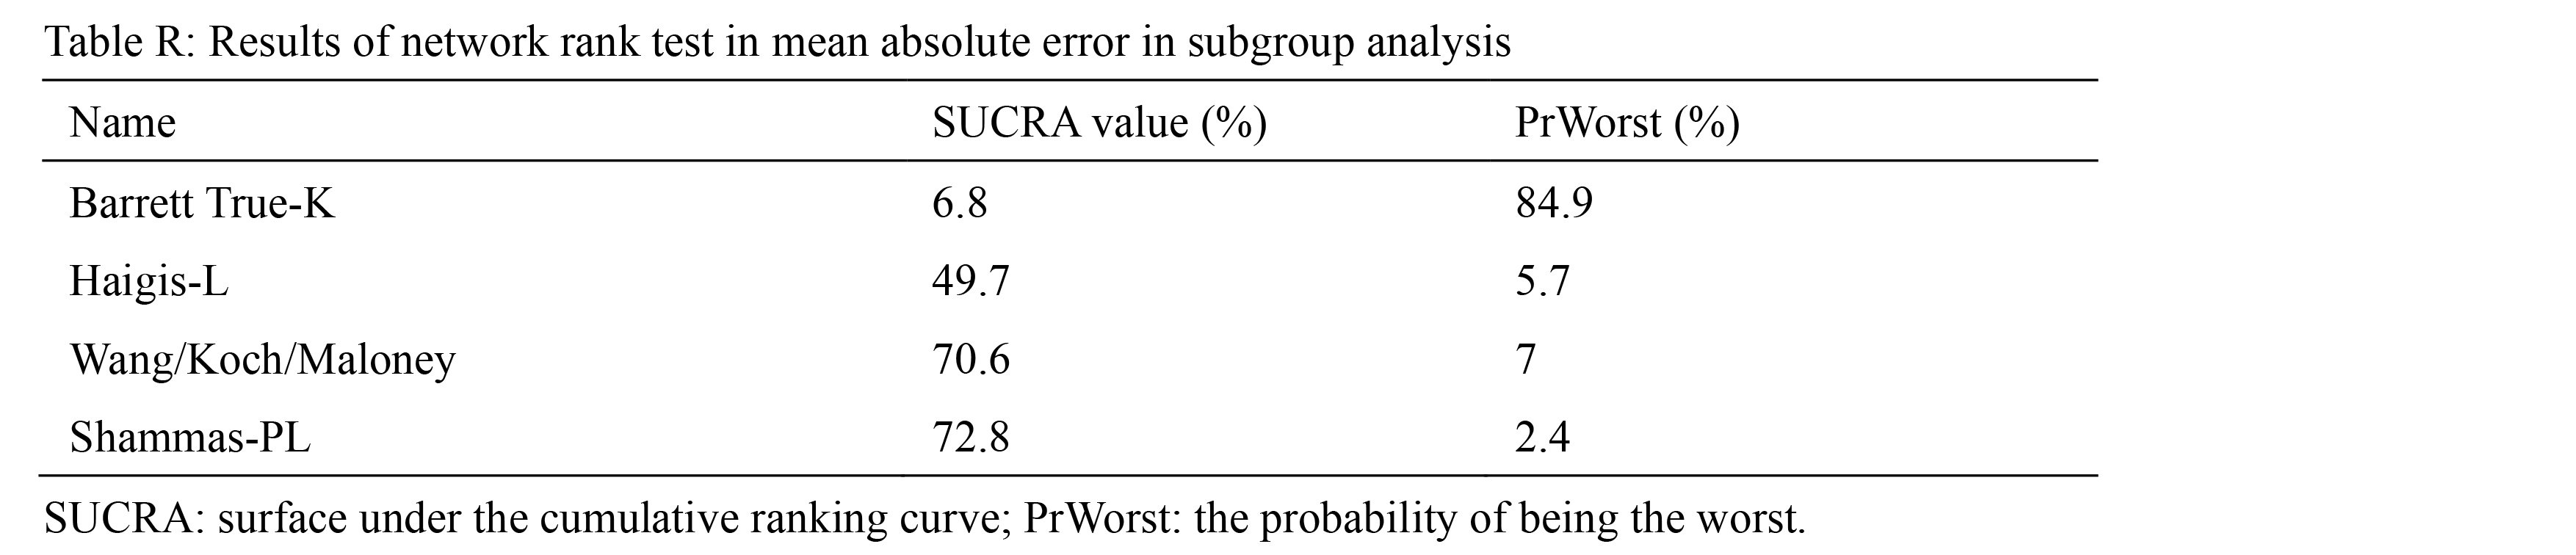 Results of network rank test in mean absolute error in subgroup analysis